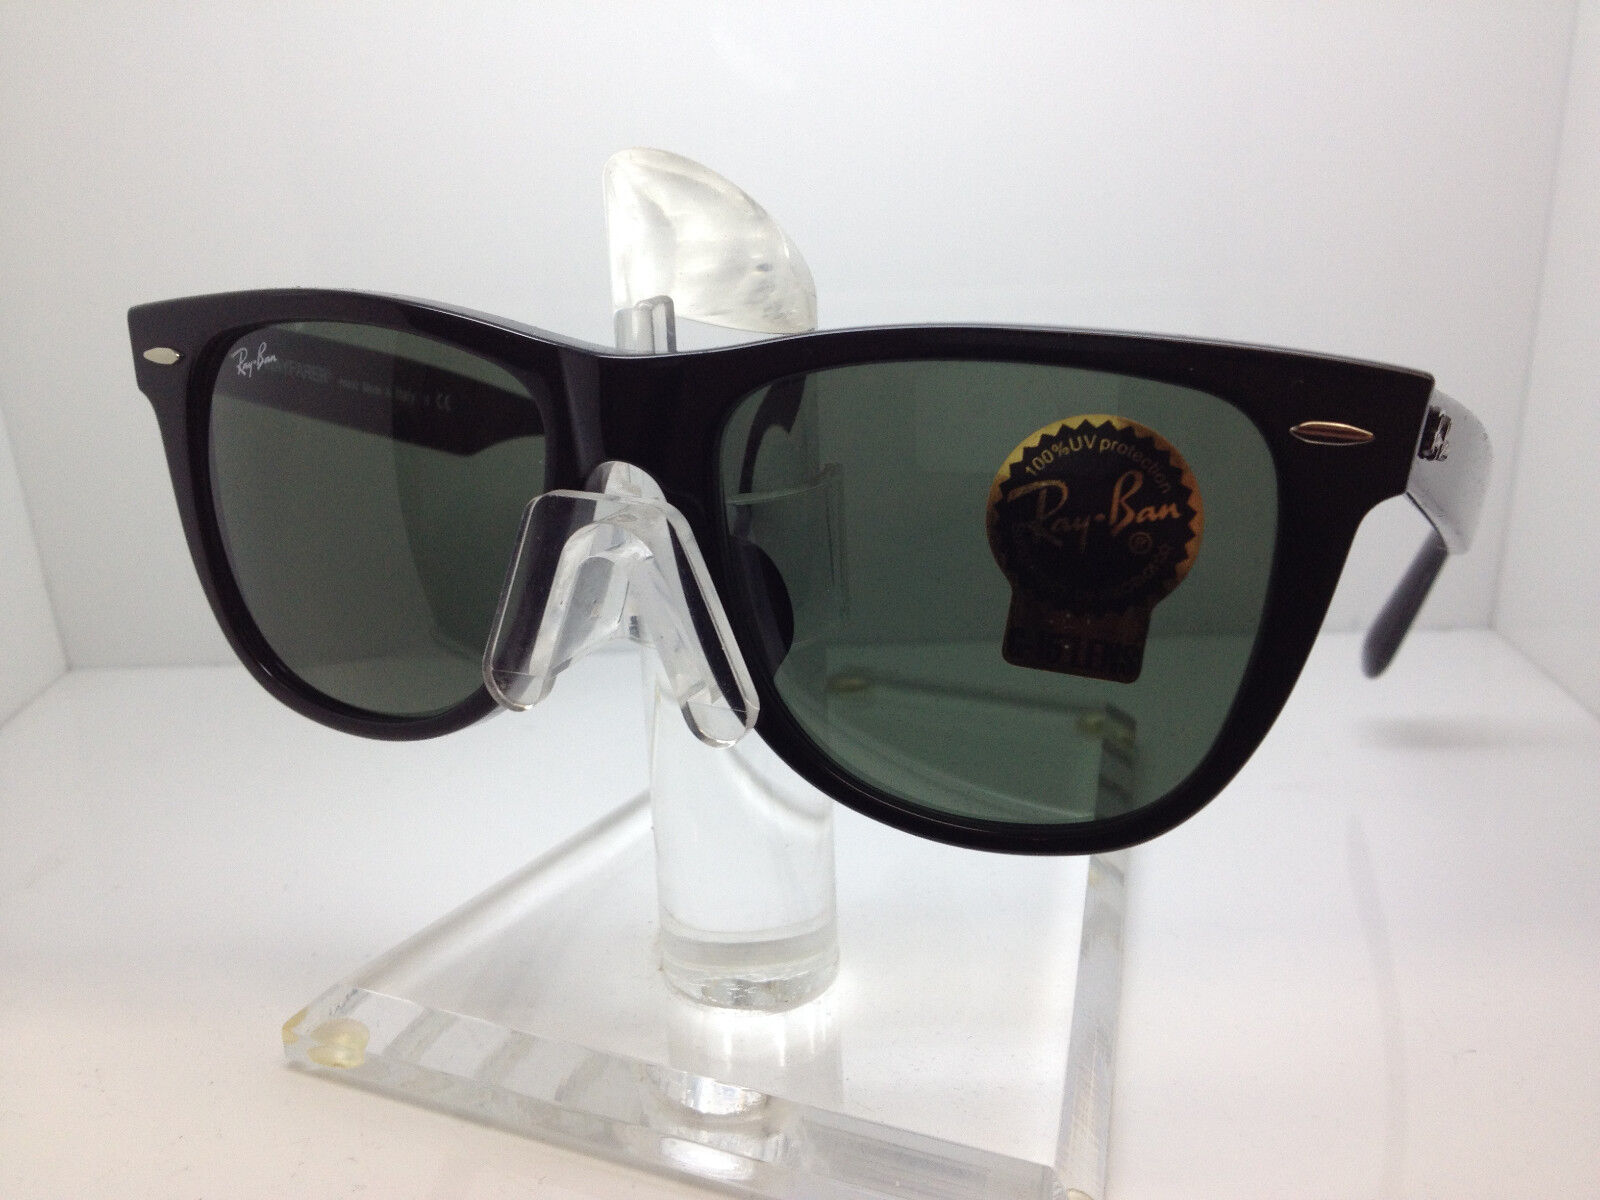 74a14724ee Ray Ban Sunglasses RB 2140f 901s Matte Black 54mm for sale online